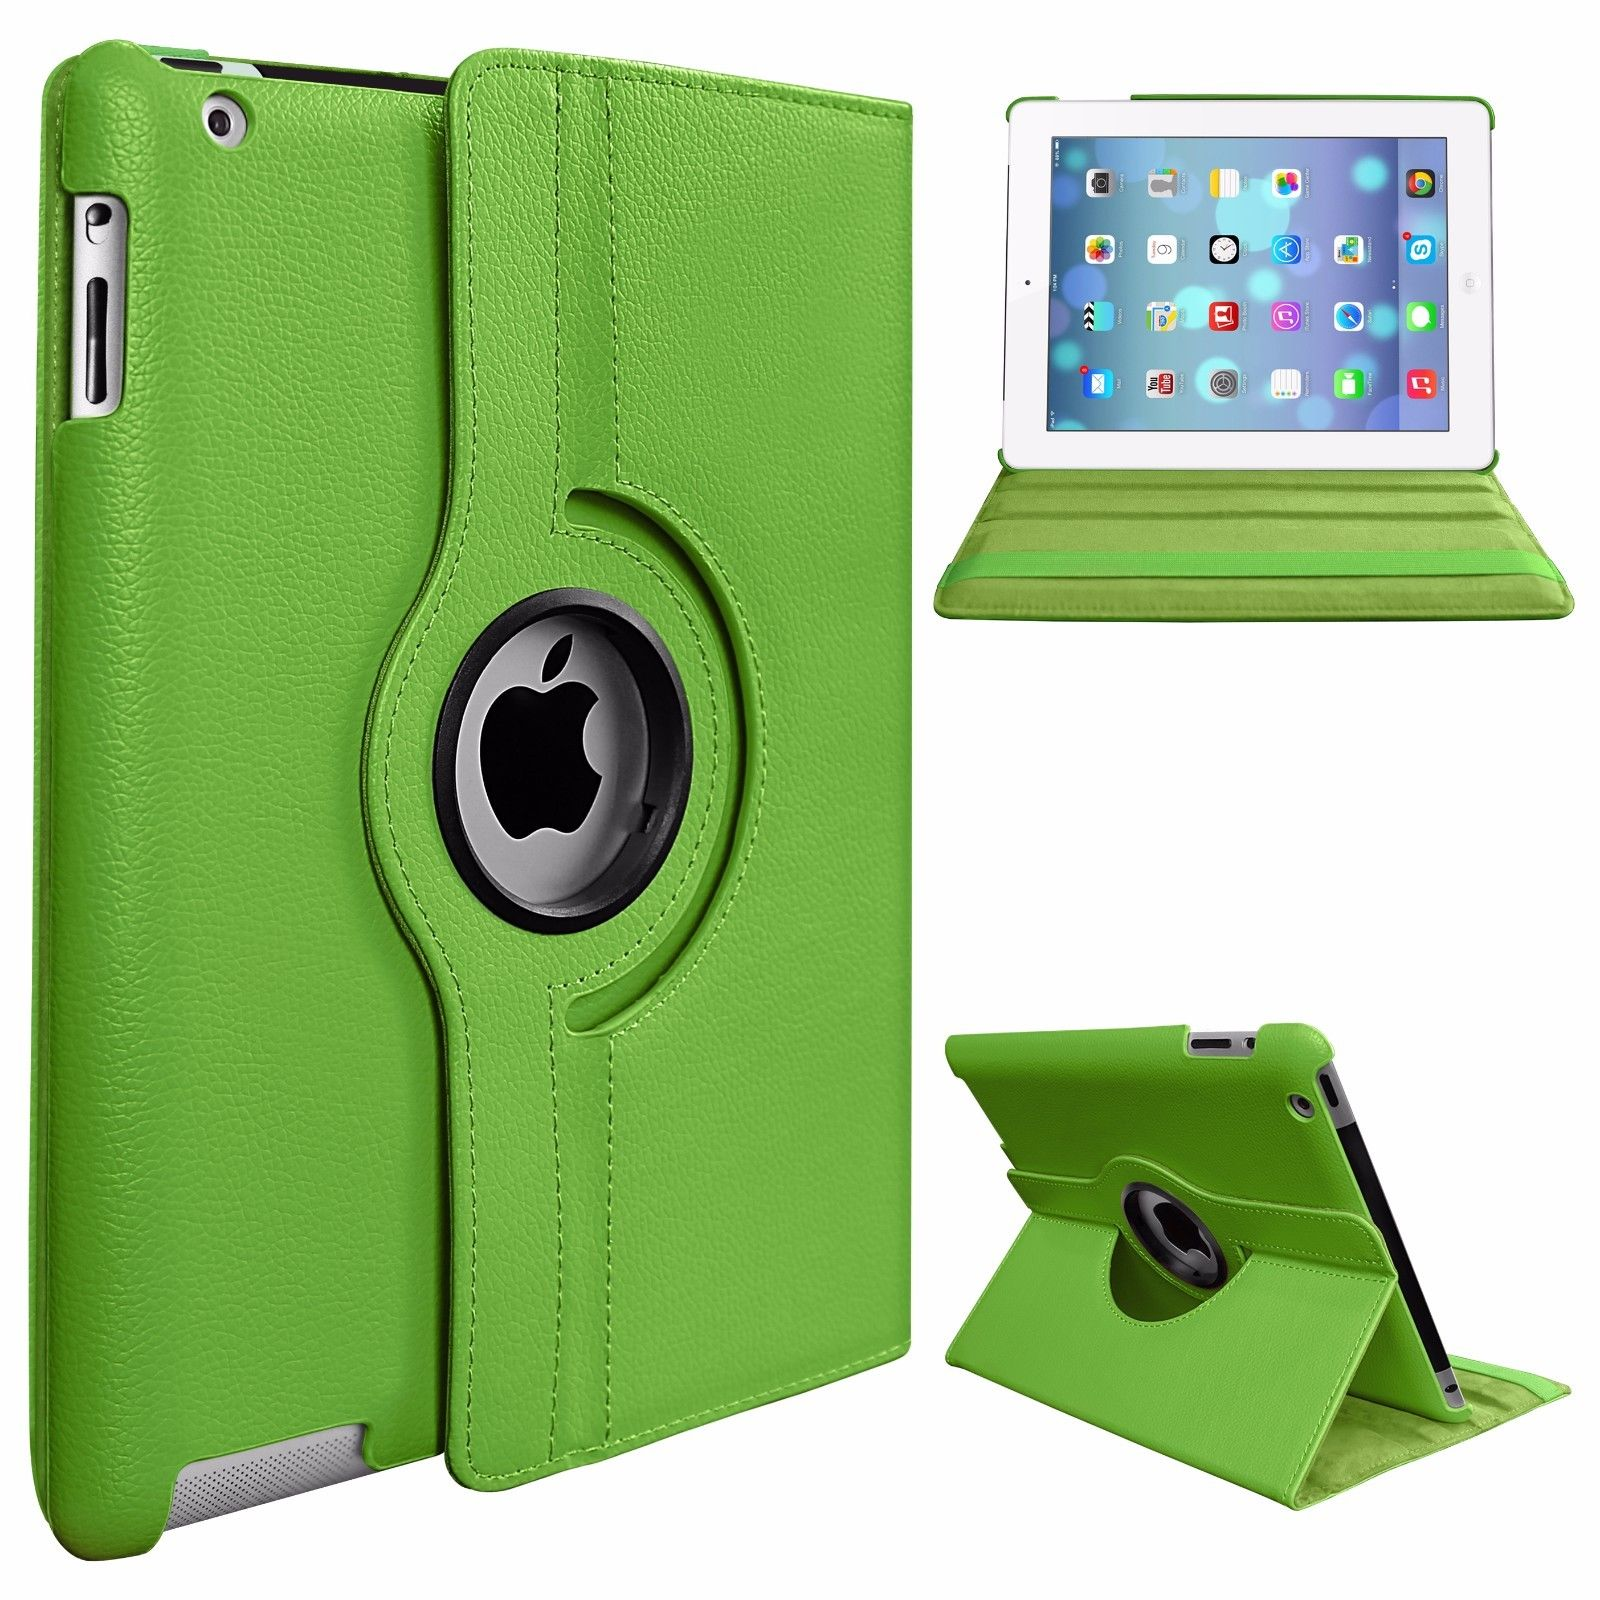 Protective Cover 360-degree Rotating Leather Case for Apple ipad  Air/ipad5 green